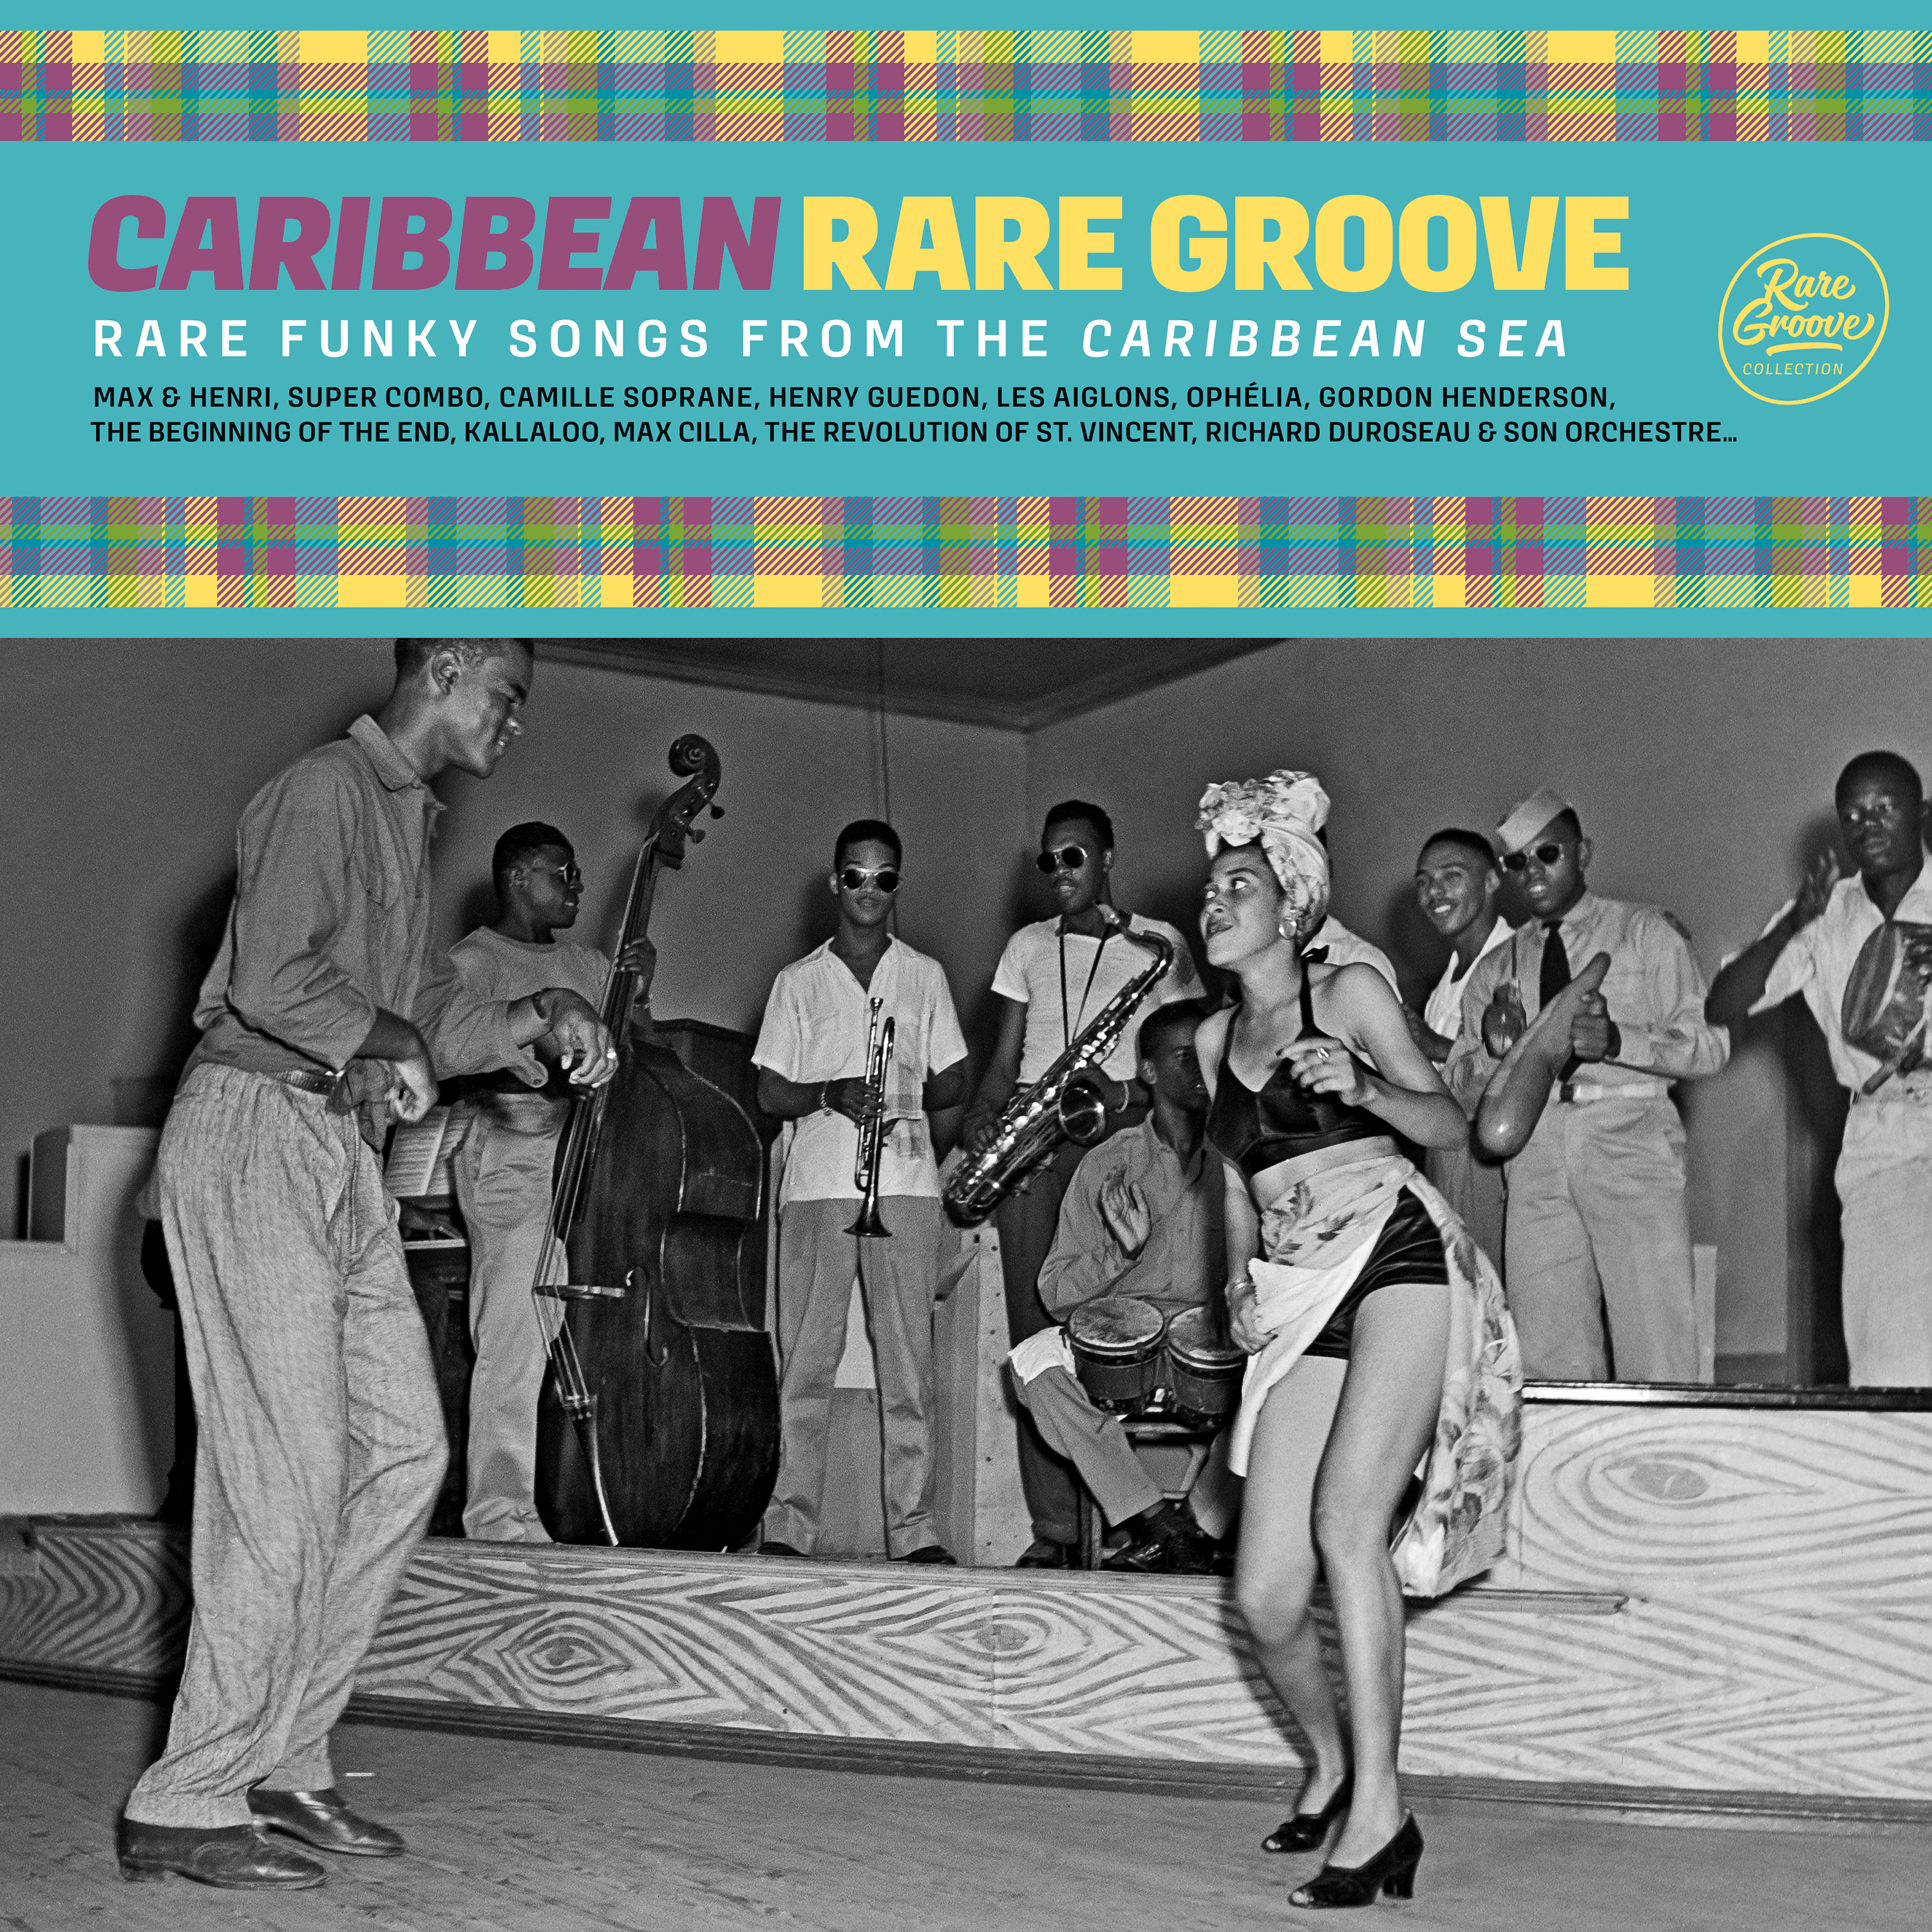 WAGRAM-CaribbeanRareGroove-cover-3000px (1)